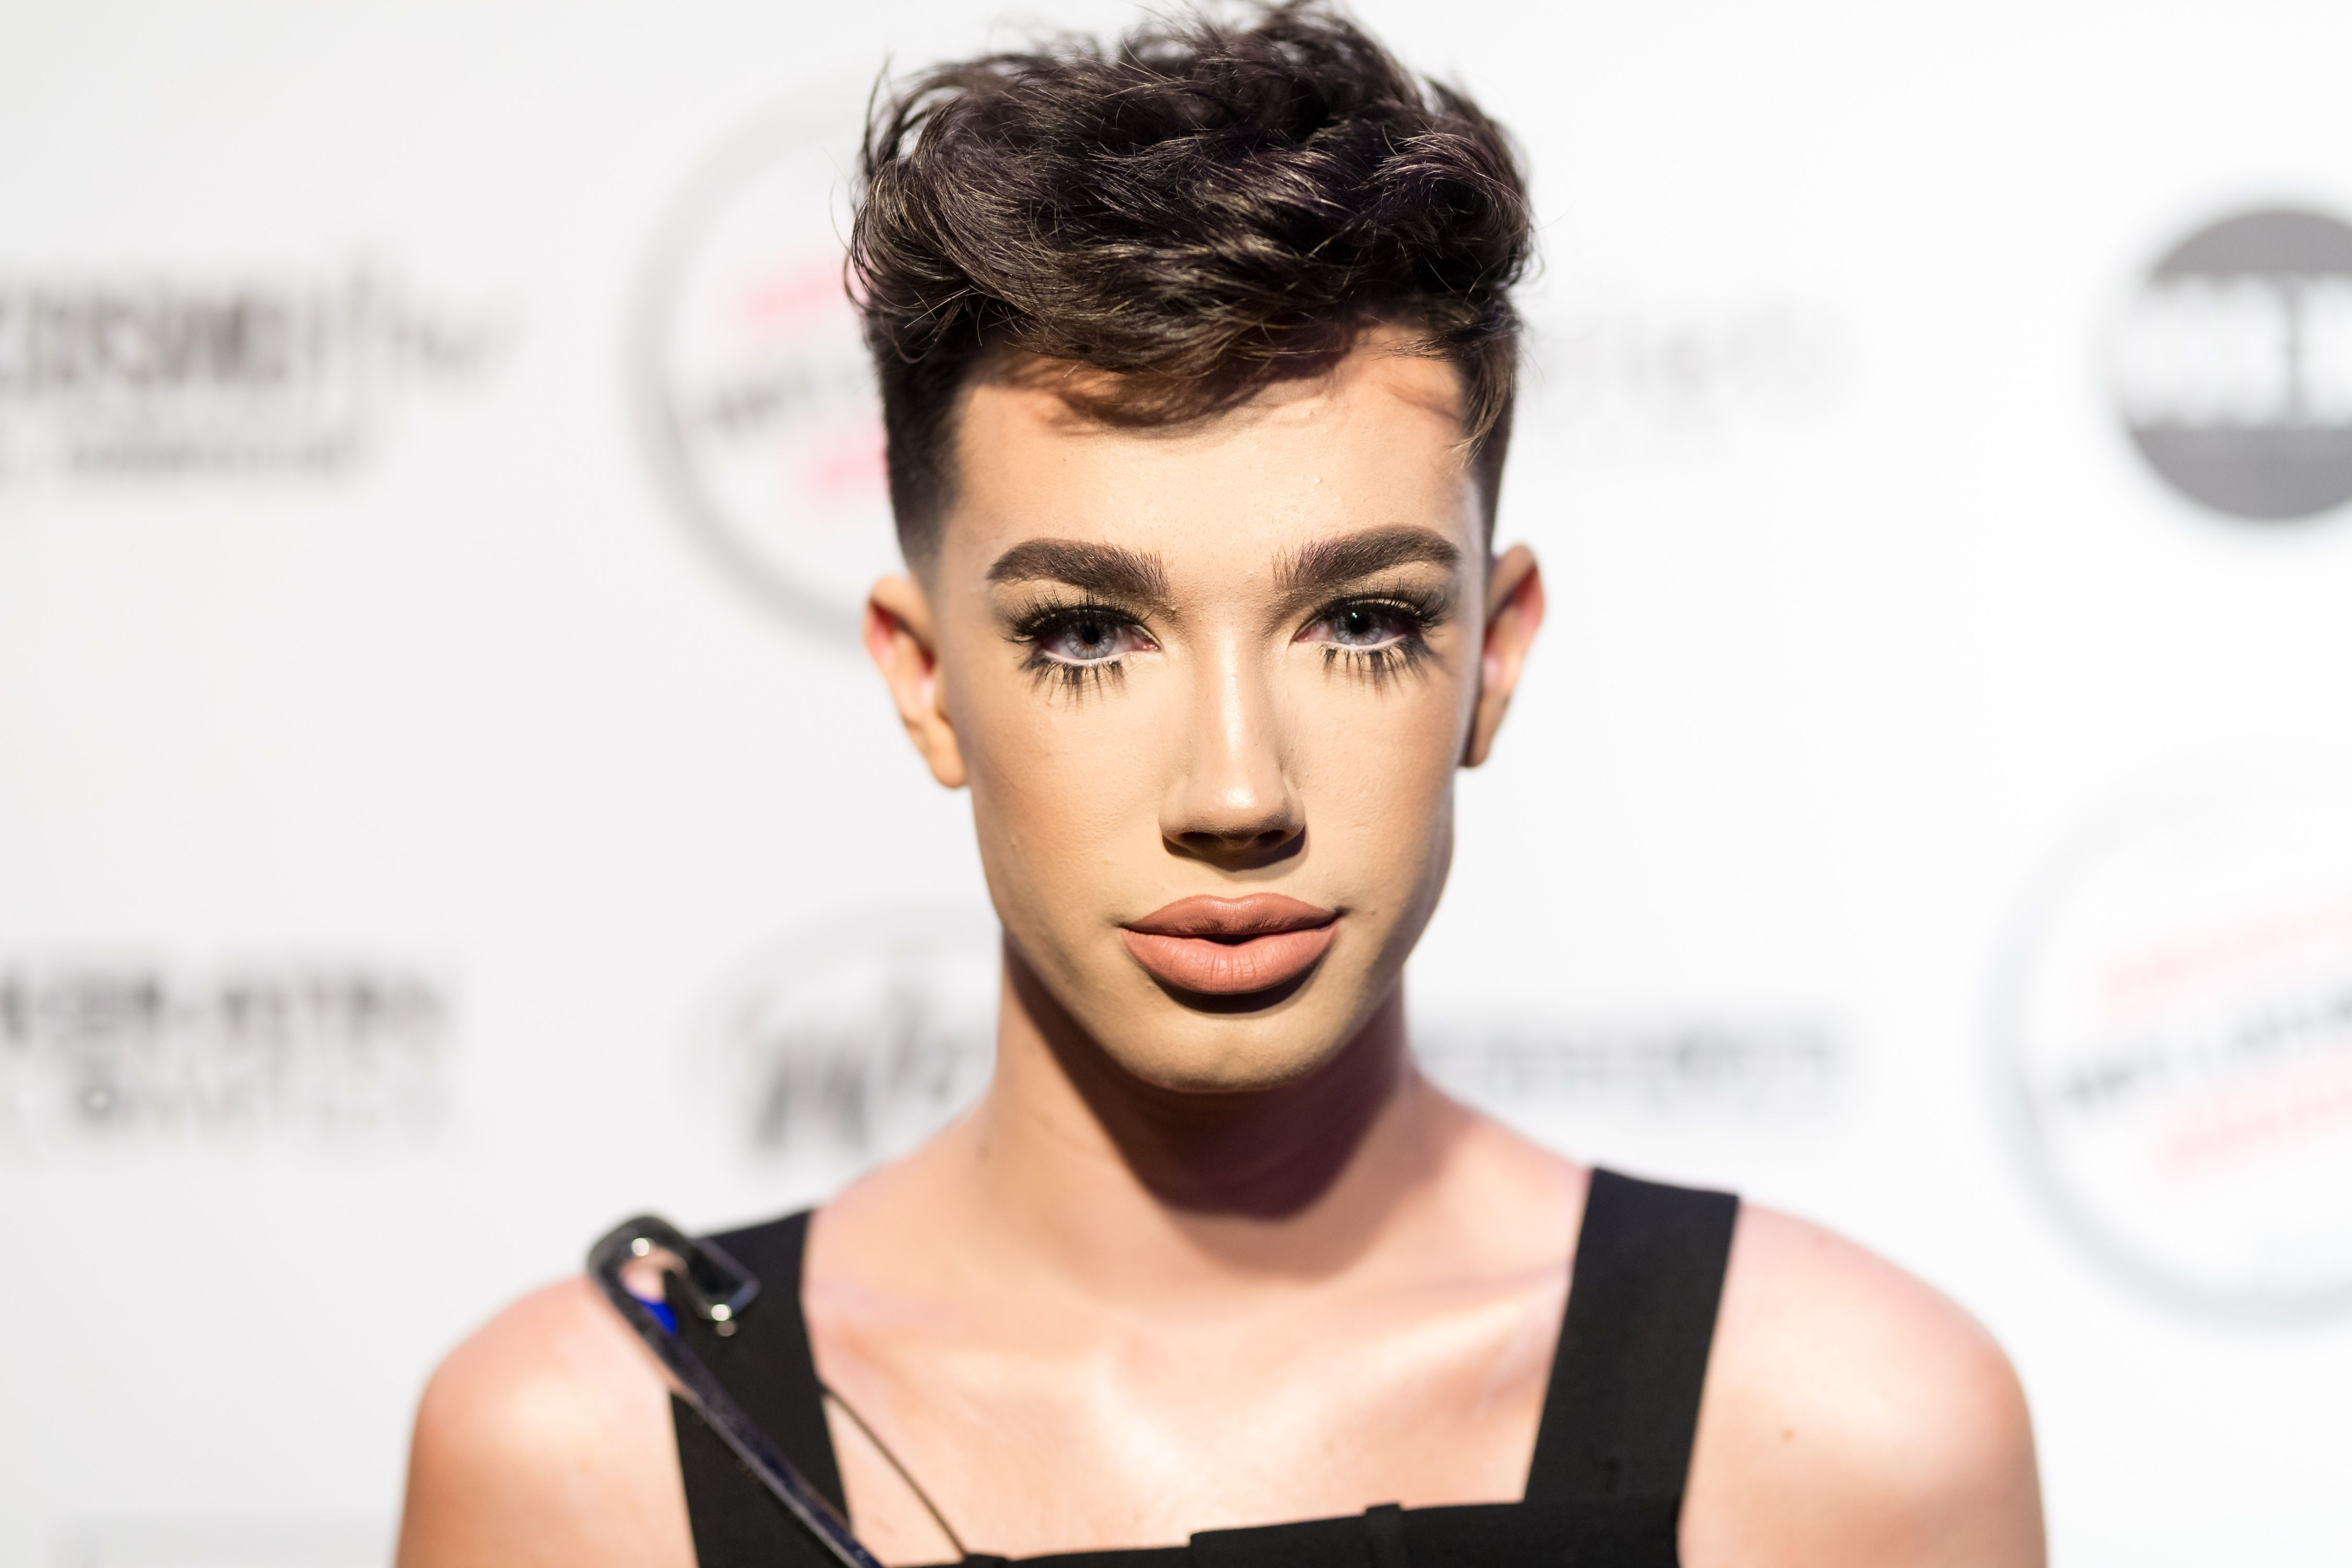 OMG, James Charles Dyed His Hair Platinum Blonde and Looks Totally Unrecognizable